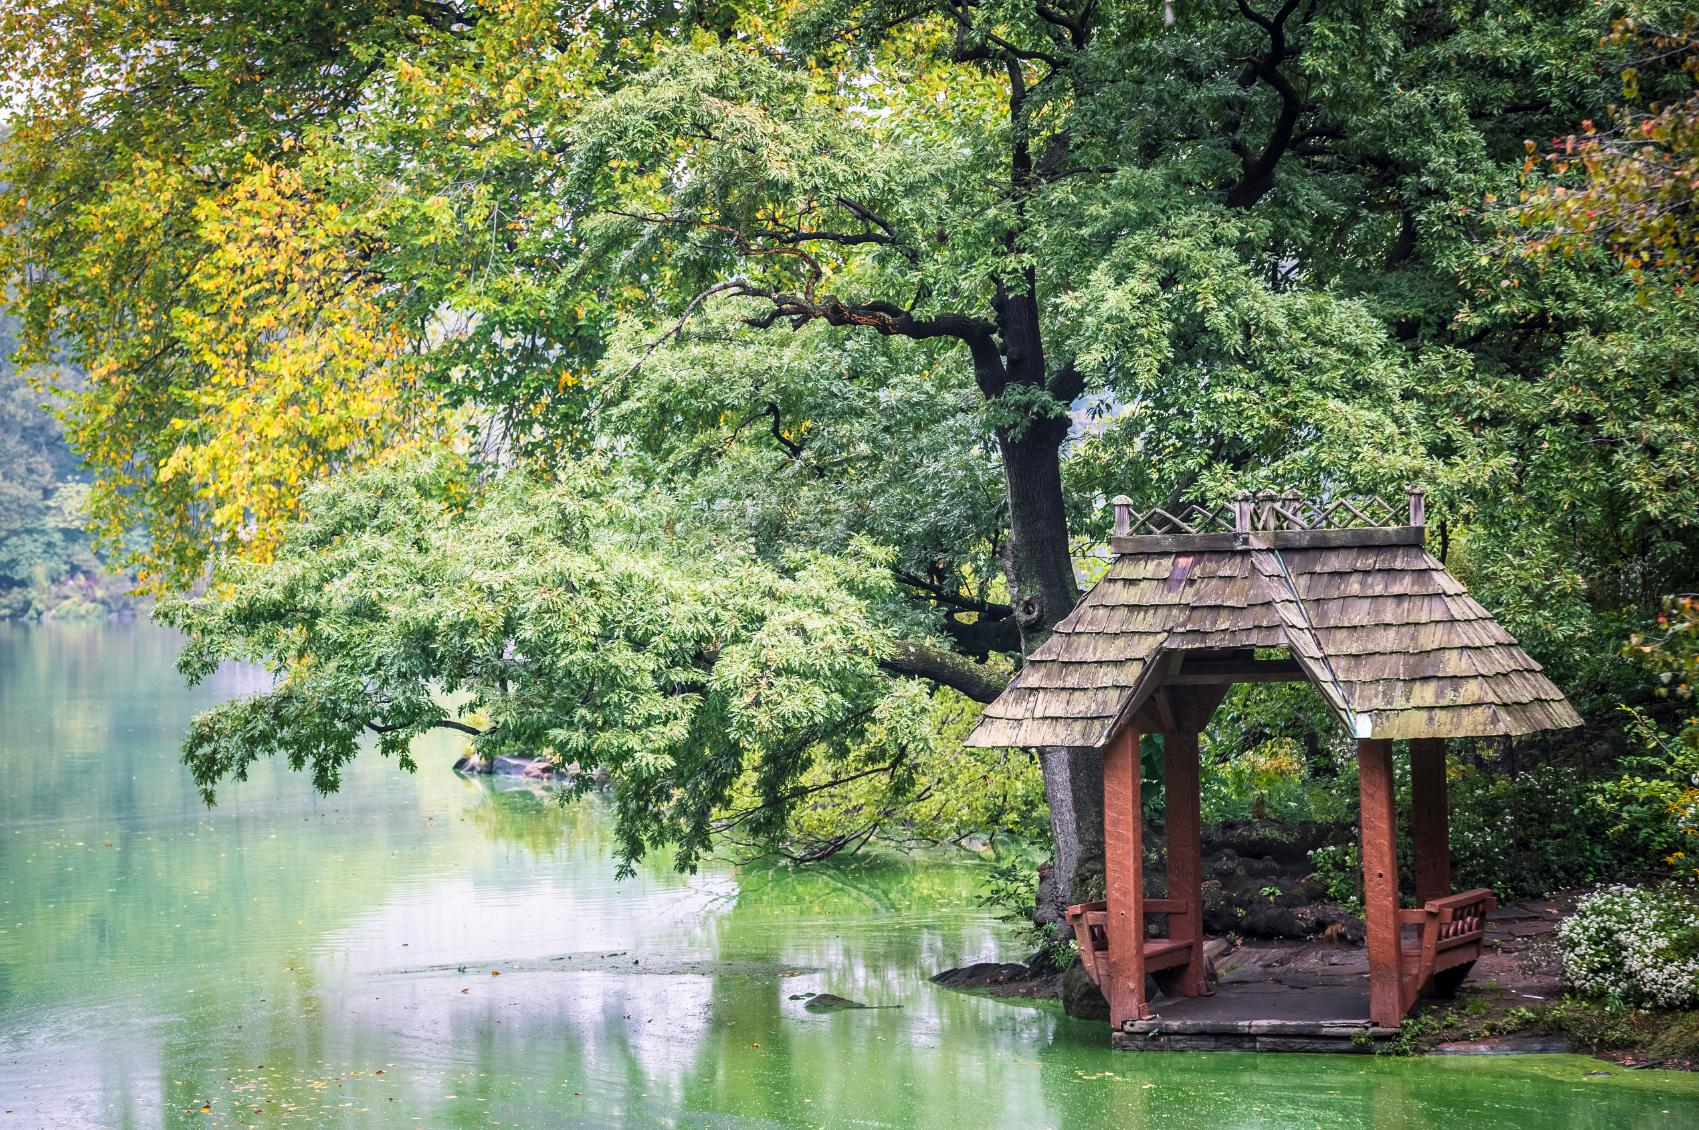 A wooden gazebo on the Lake in Central Park